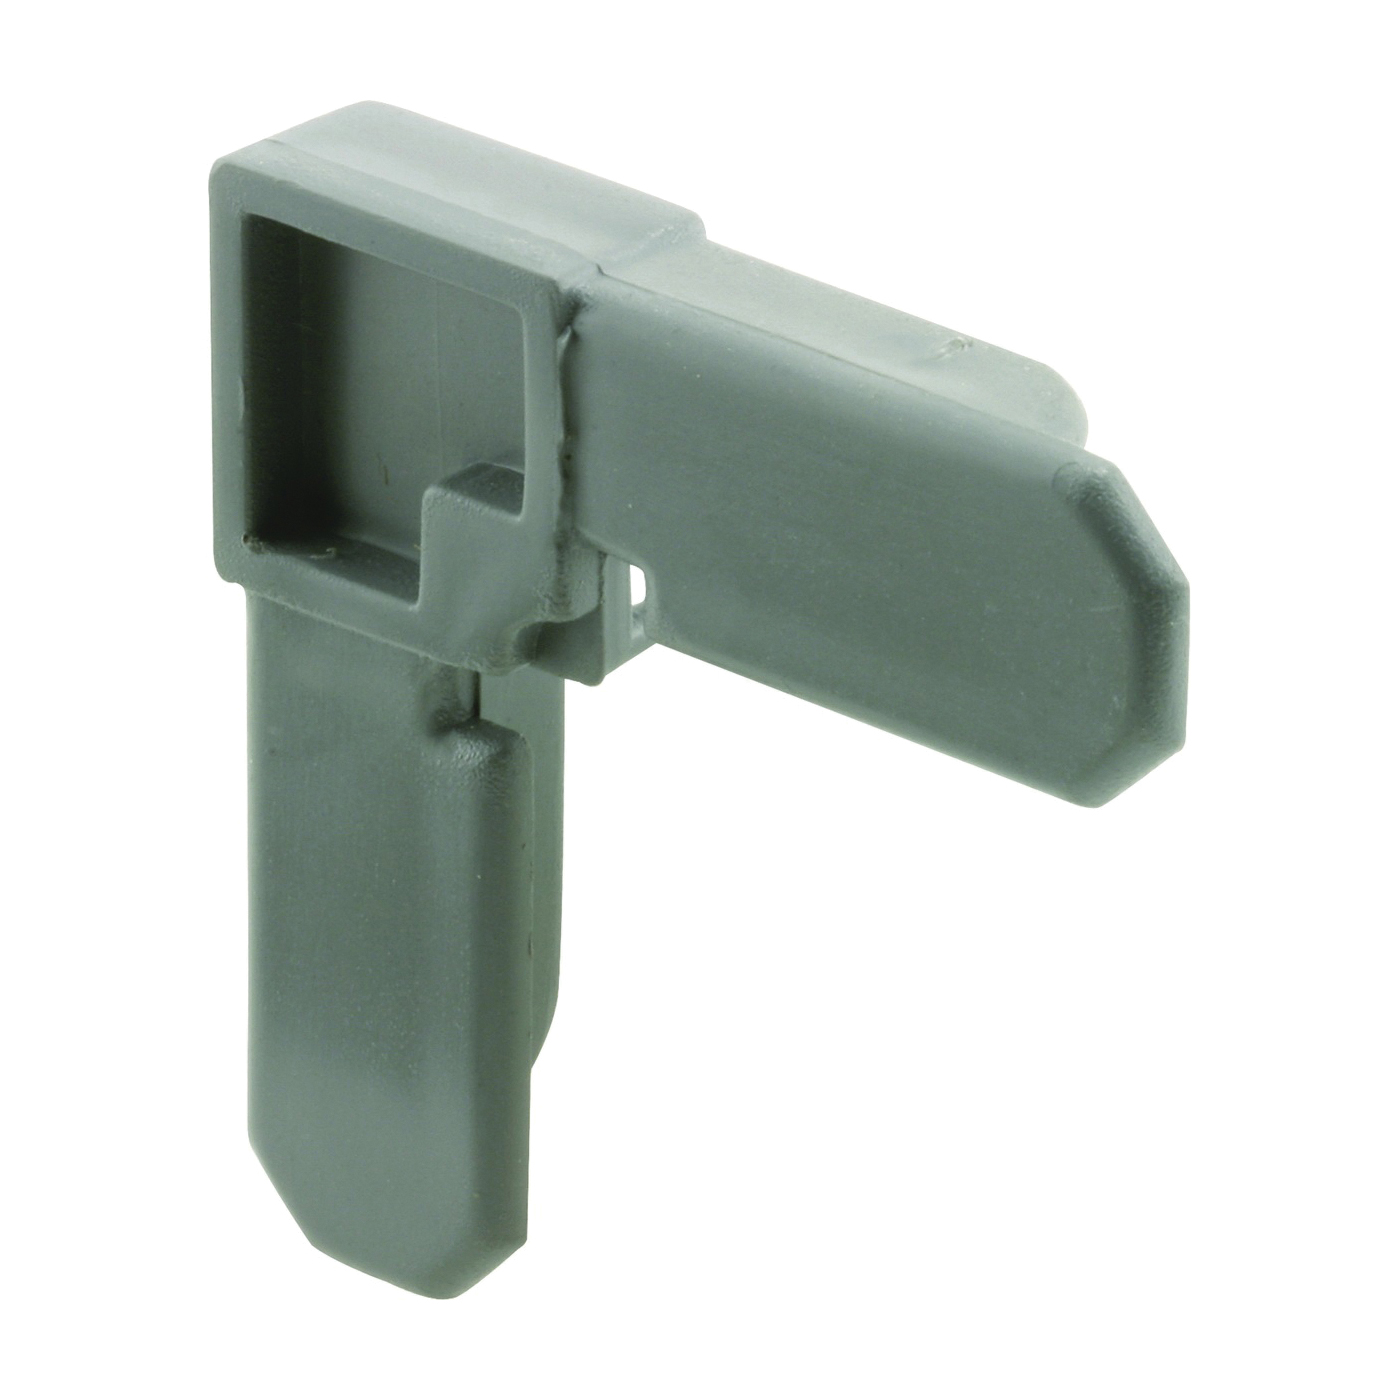 Picture of Prime-Line PL 14272 Screen Frame Corner, Square Cut, Plastic, Gray, For: PL14059 Screen Frame, 100, Box